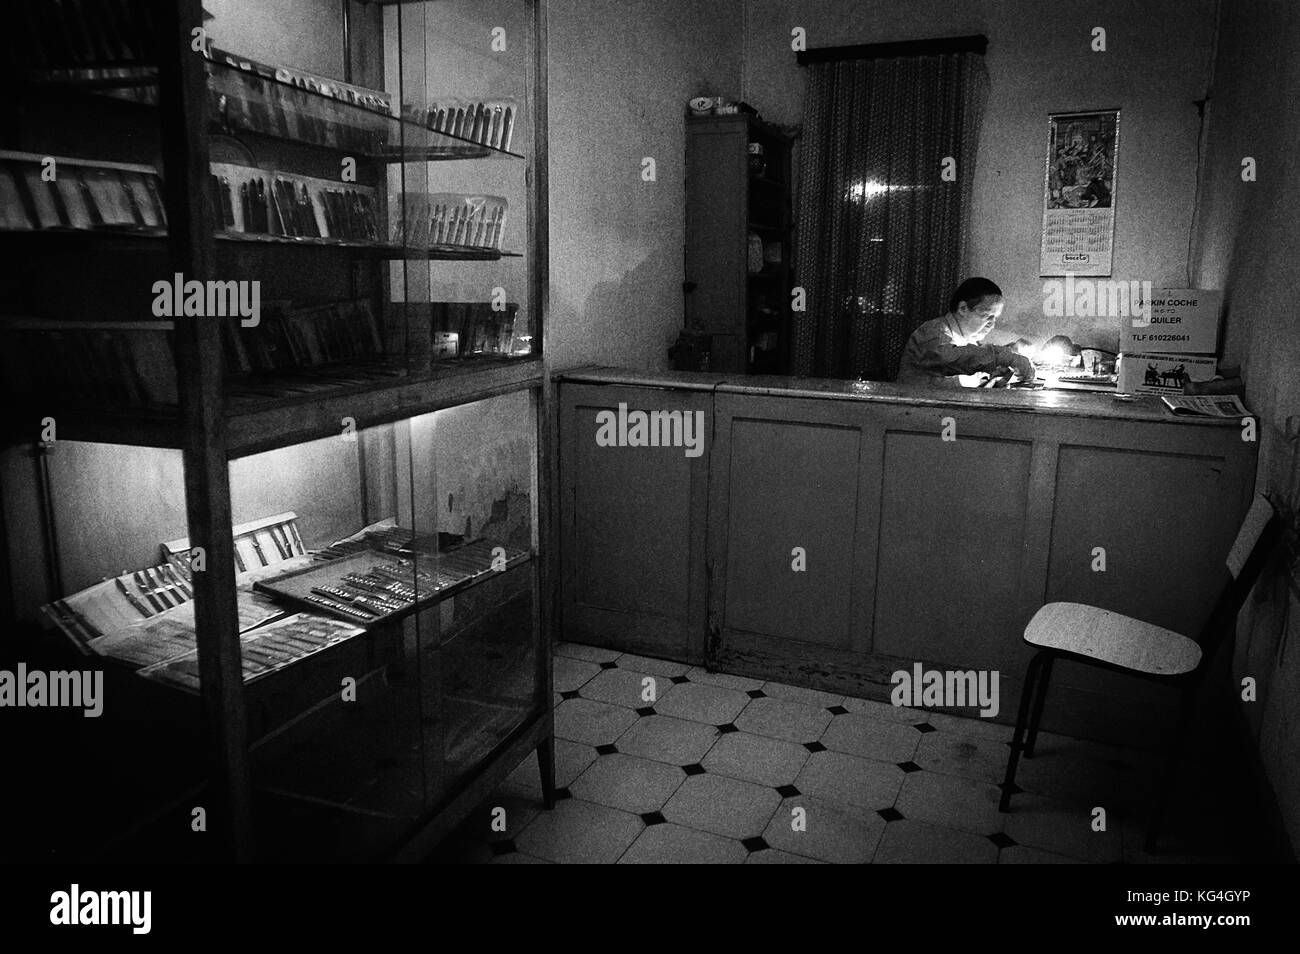 Antonio Gonzalez works at his extinct watch workshop in the Hospital street of Barcelona, Spain. Date: 10/06/2005. - Stock Image